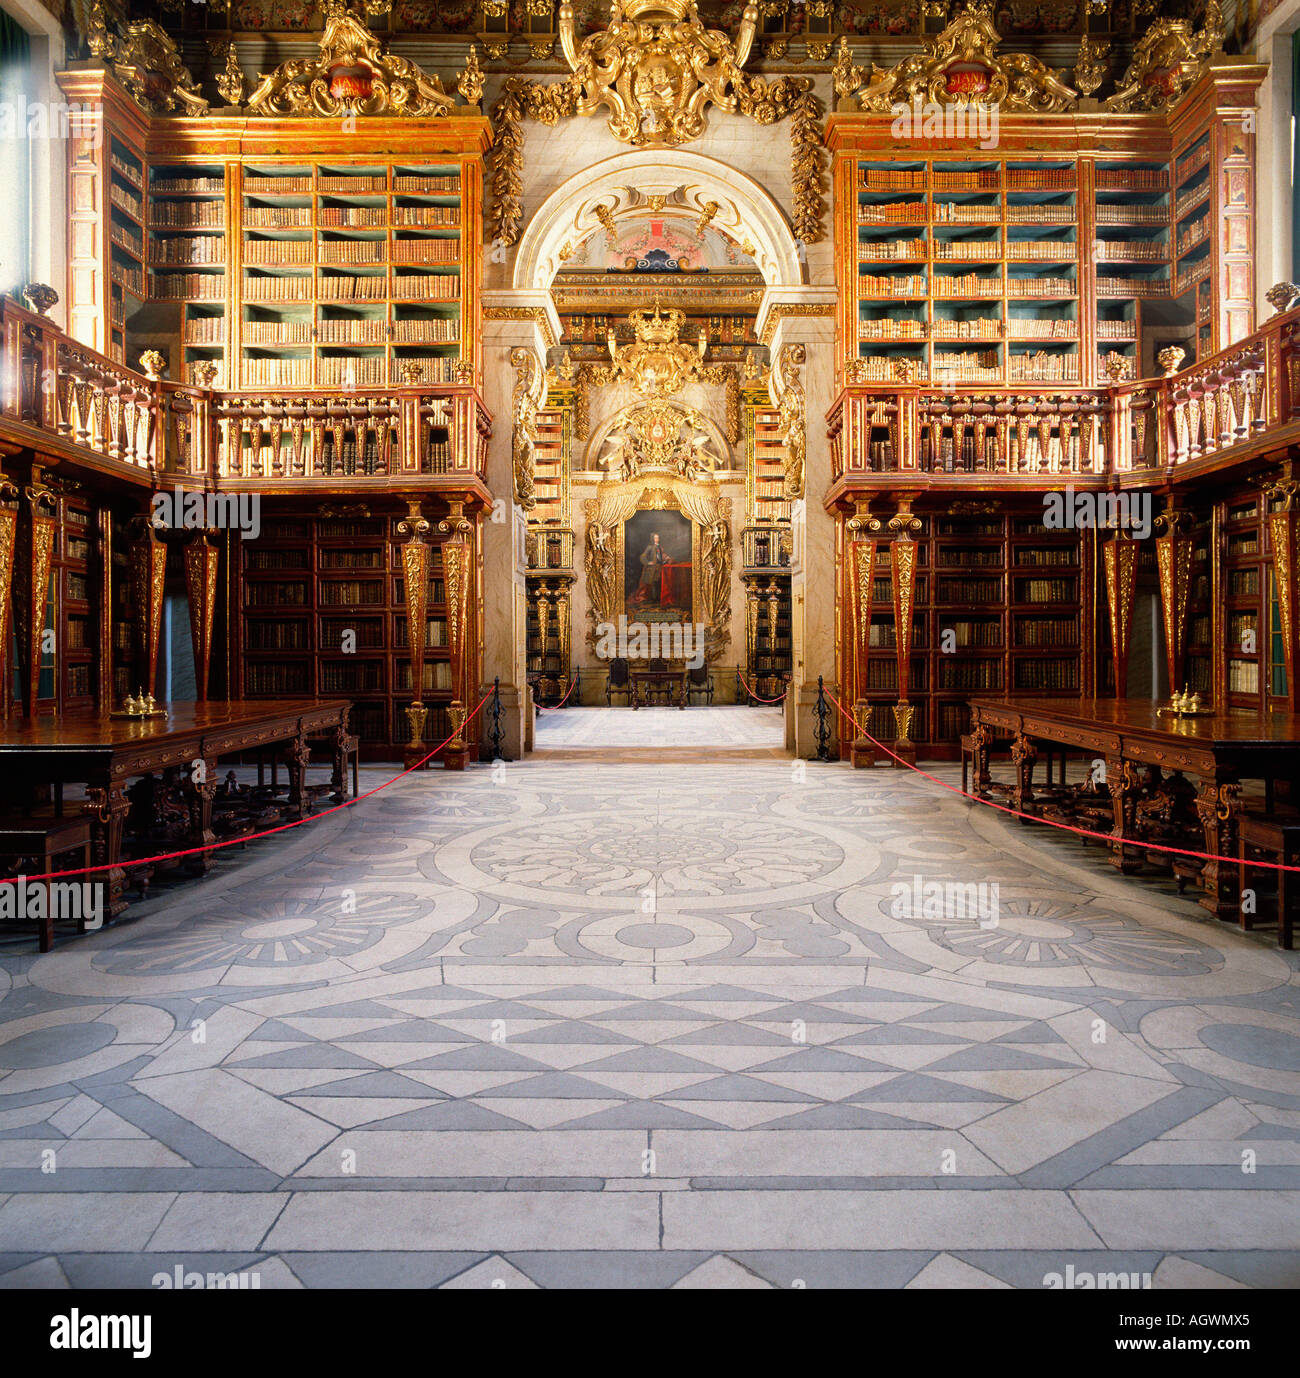 Old bibliotheque / Coimbra - Stock Image